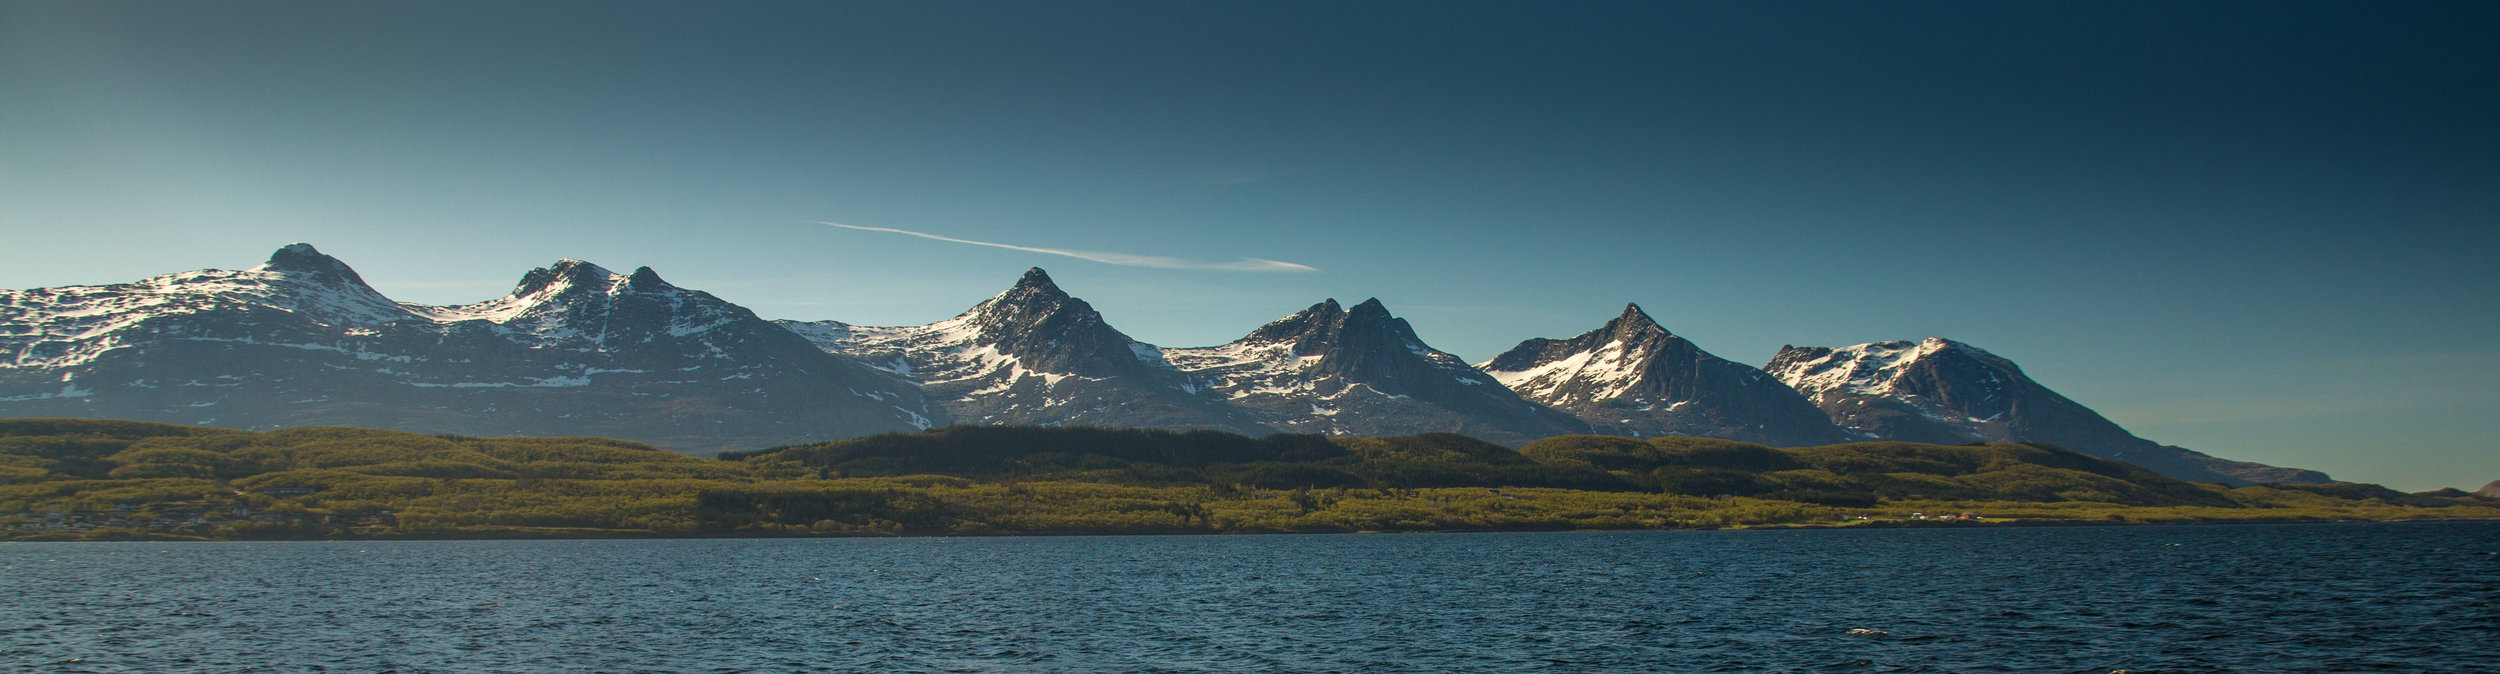 Past mountains steeped in Norse legend like these Seven (Troll) Sisters.